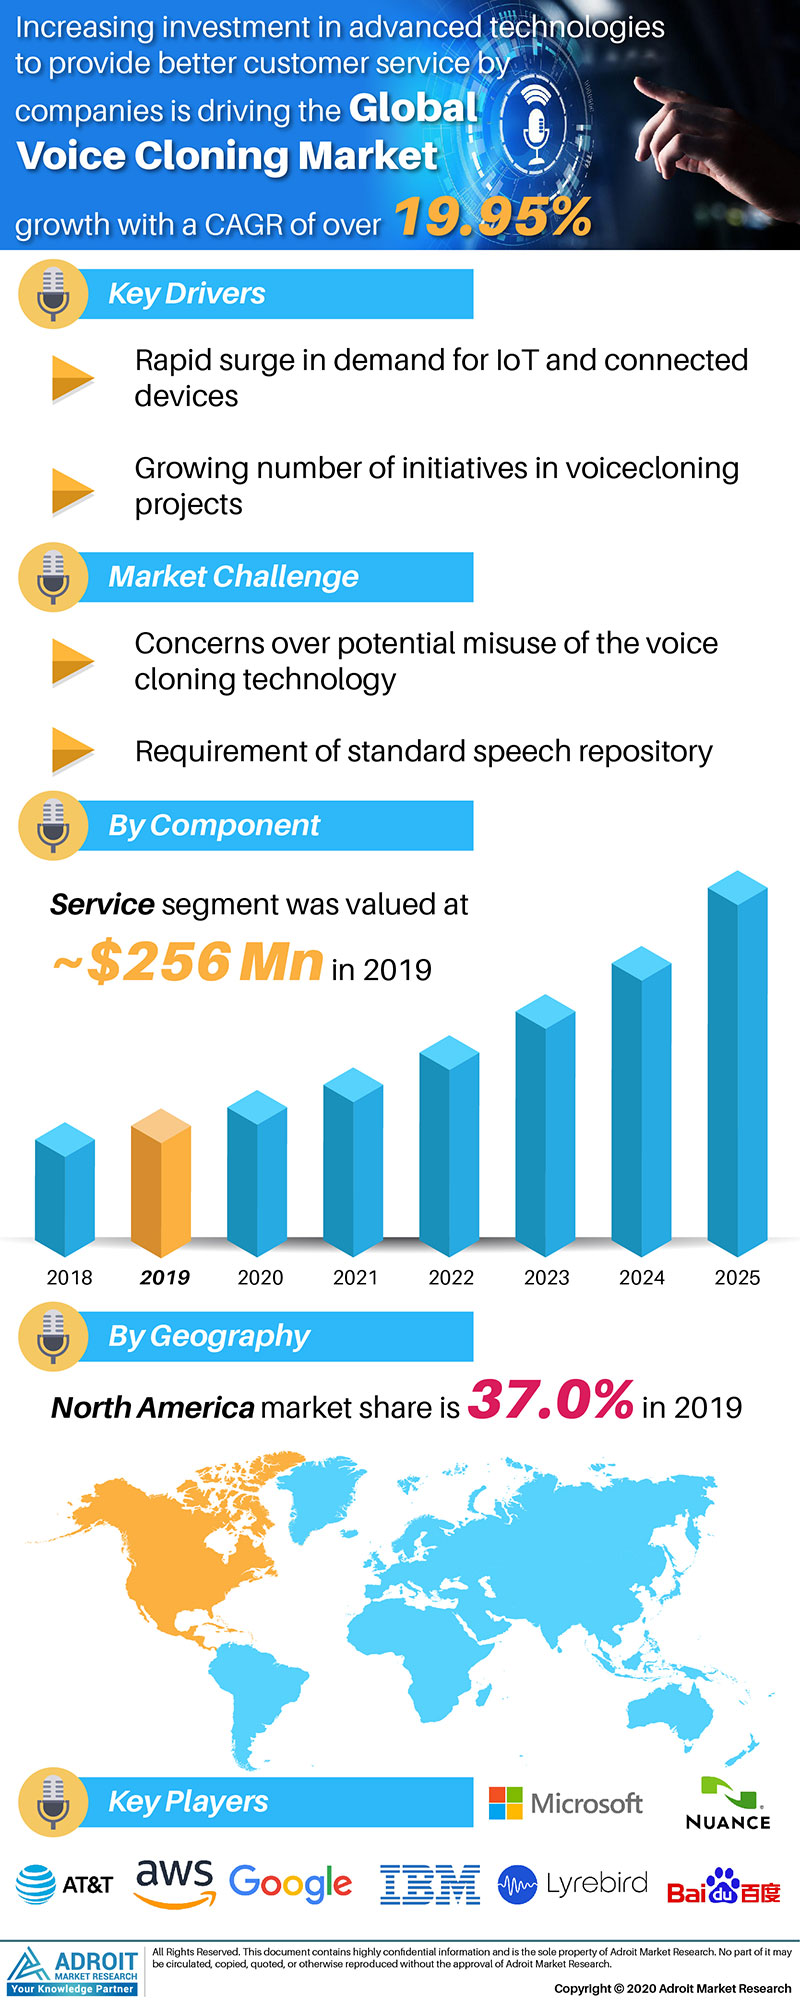 Voice Cloning Market Size 2017 By Application, Product, Region and Forecast 2019 to 2025